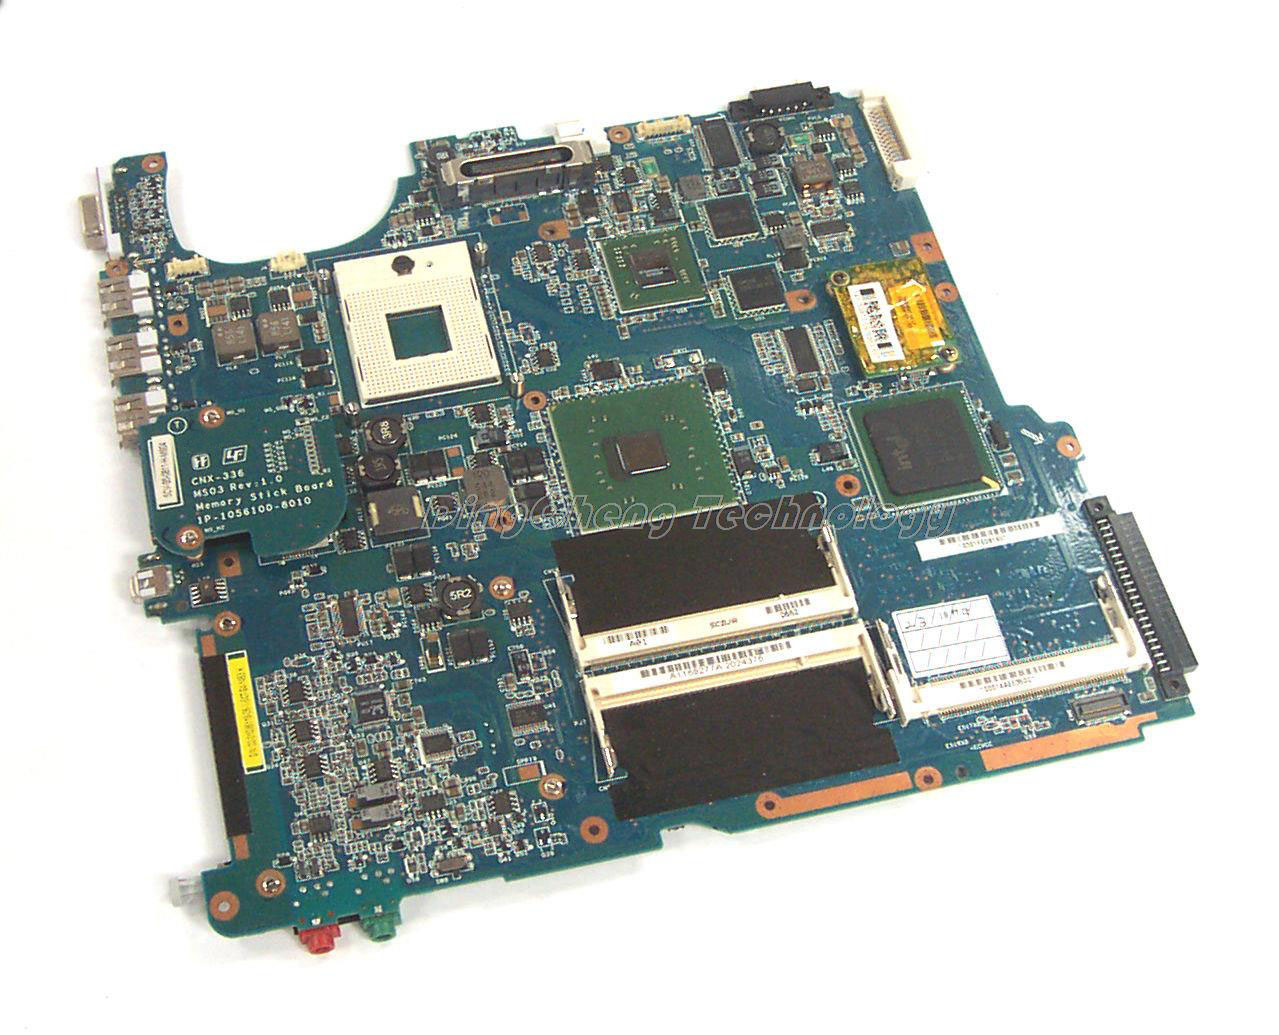 SHELI MBX 143 laptop Motherboard For Sony MBX-143 MS04-M/B A1168157A 1P-0058100-8012 non-integrated graphics card motherboard for sony mbx 209 m922 mb mp 1p 0104j00 8012 100